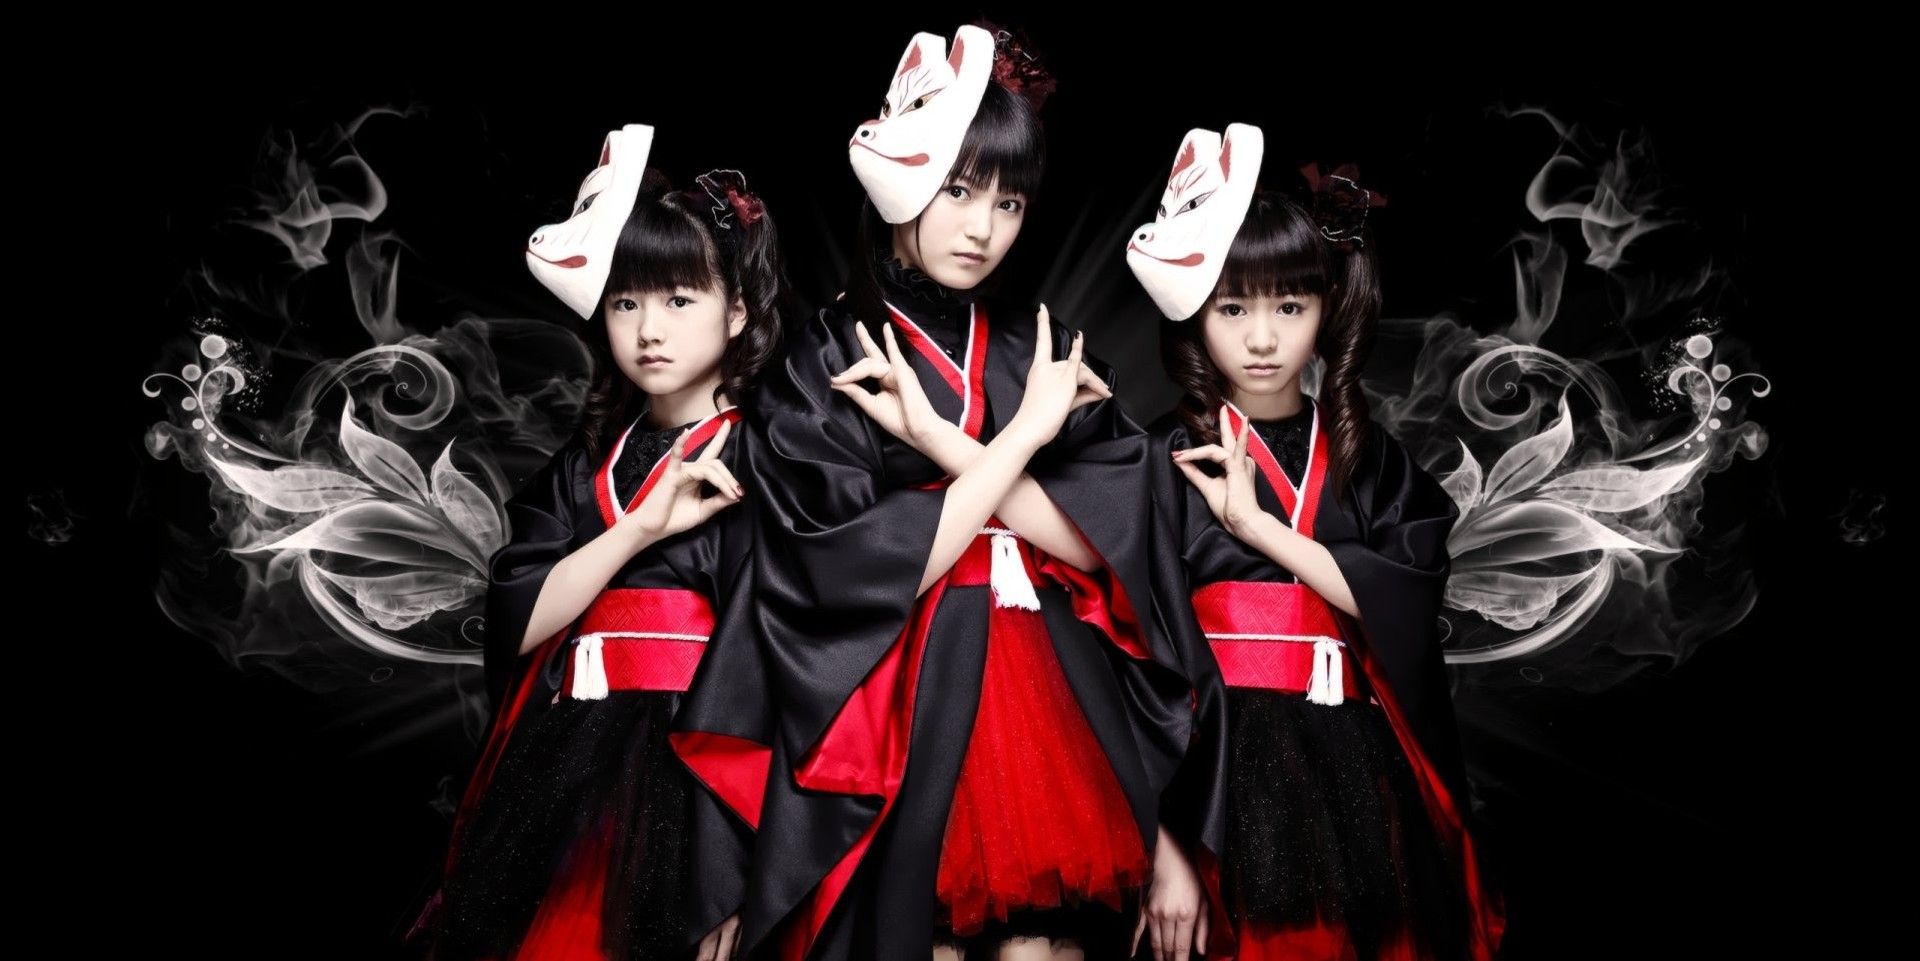 BABYMETAL announced as special guests for Judas Priest's Singapore show